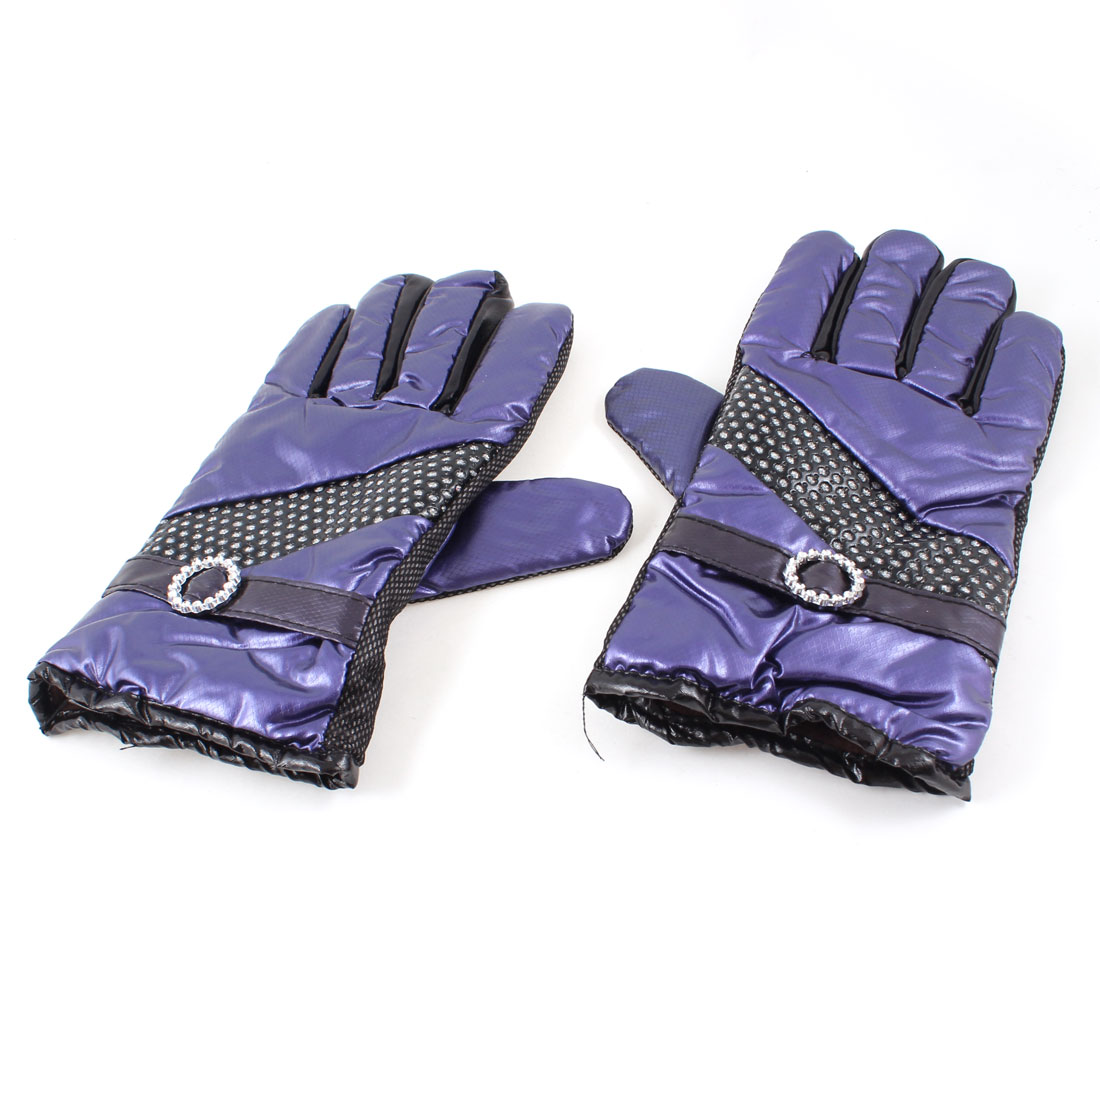 Ladies Outdoor Cycling Faux Leather Full Finger Warm Gloves Dark Purple Pair